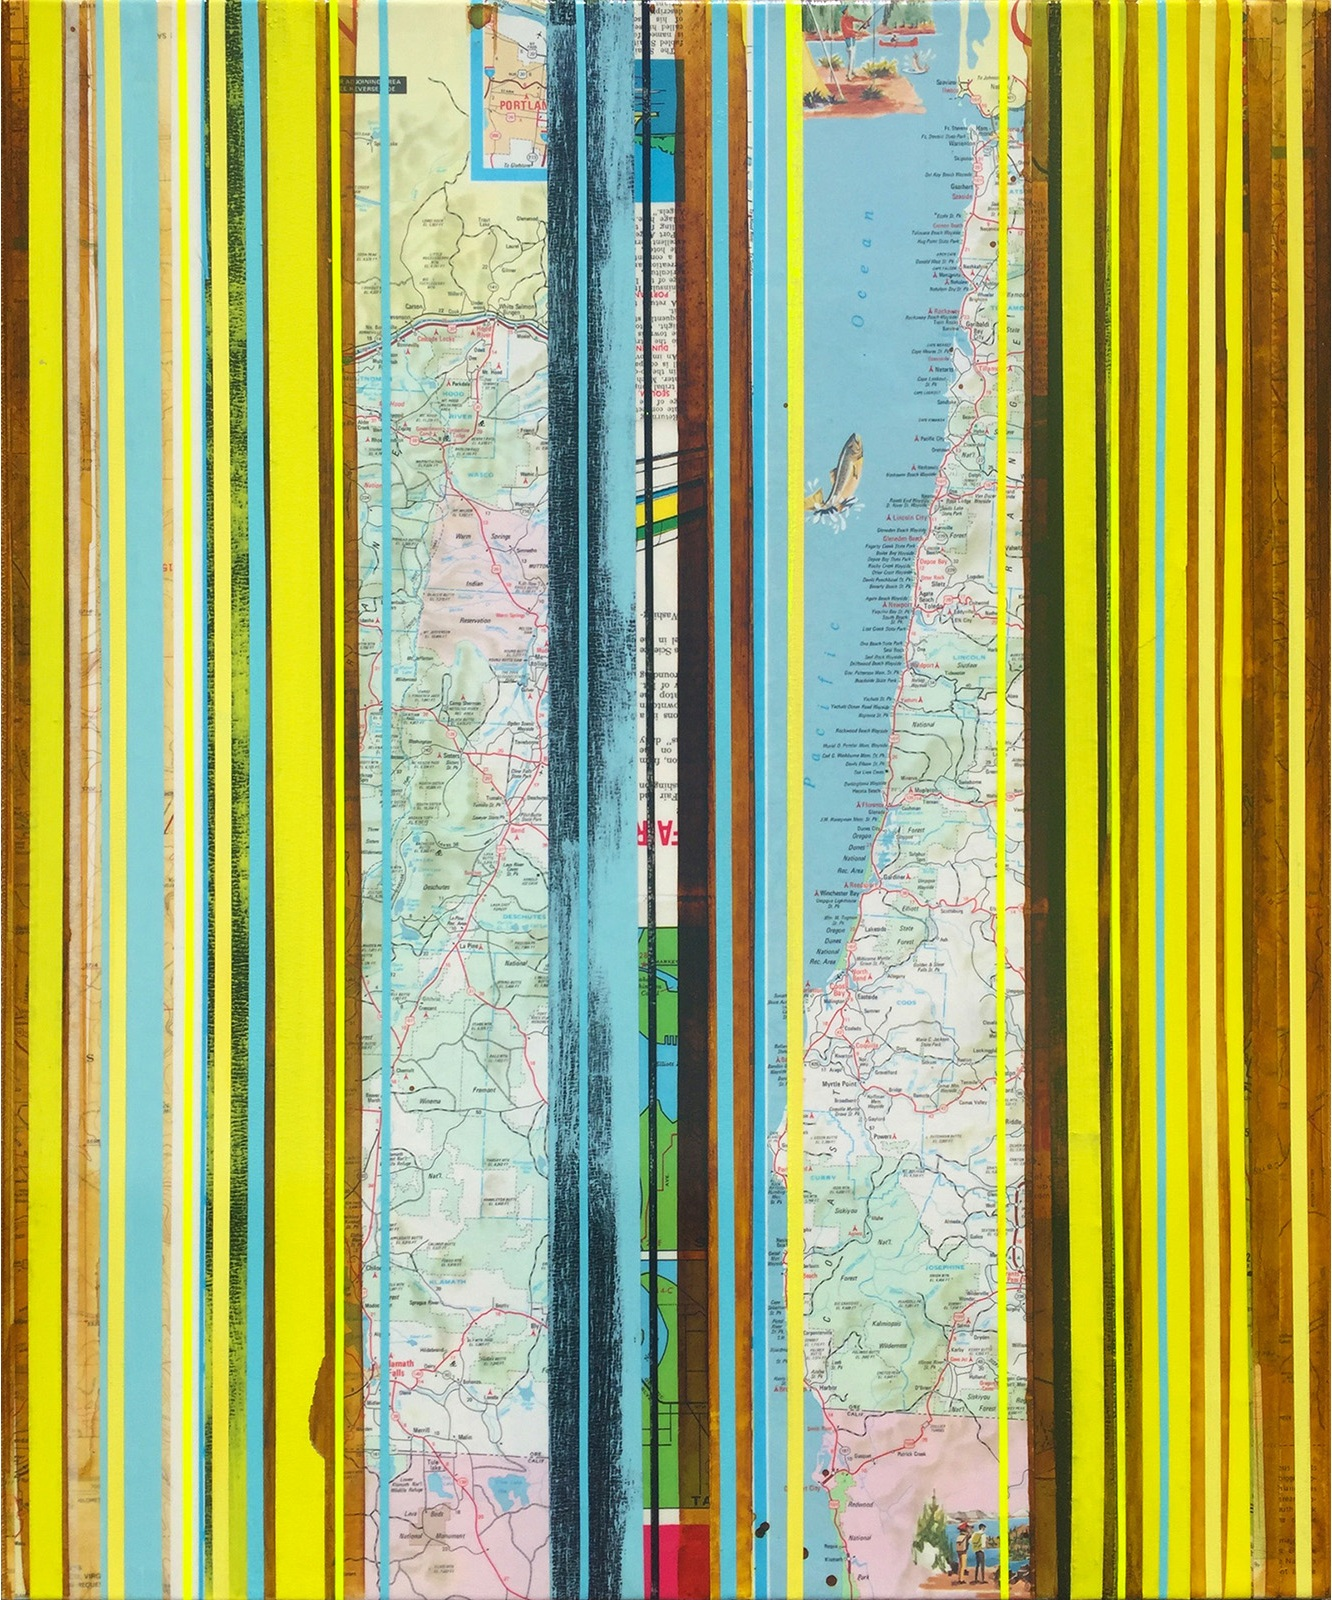 """PNW in Lemon Tonic / Mapping Series / 2016 / 24""""h x 20"""" w x 1.5""""d / Vintage maps, paper collage and ink on canvas / Unframed with collaged edge"""